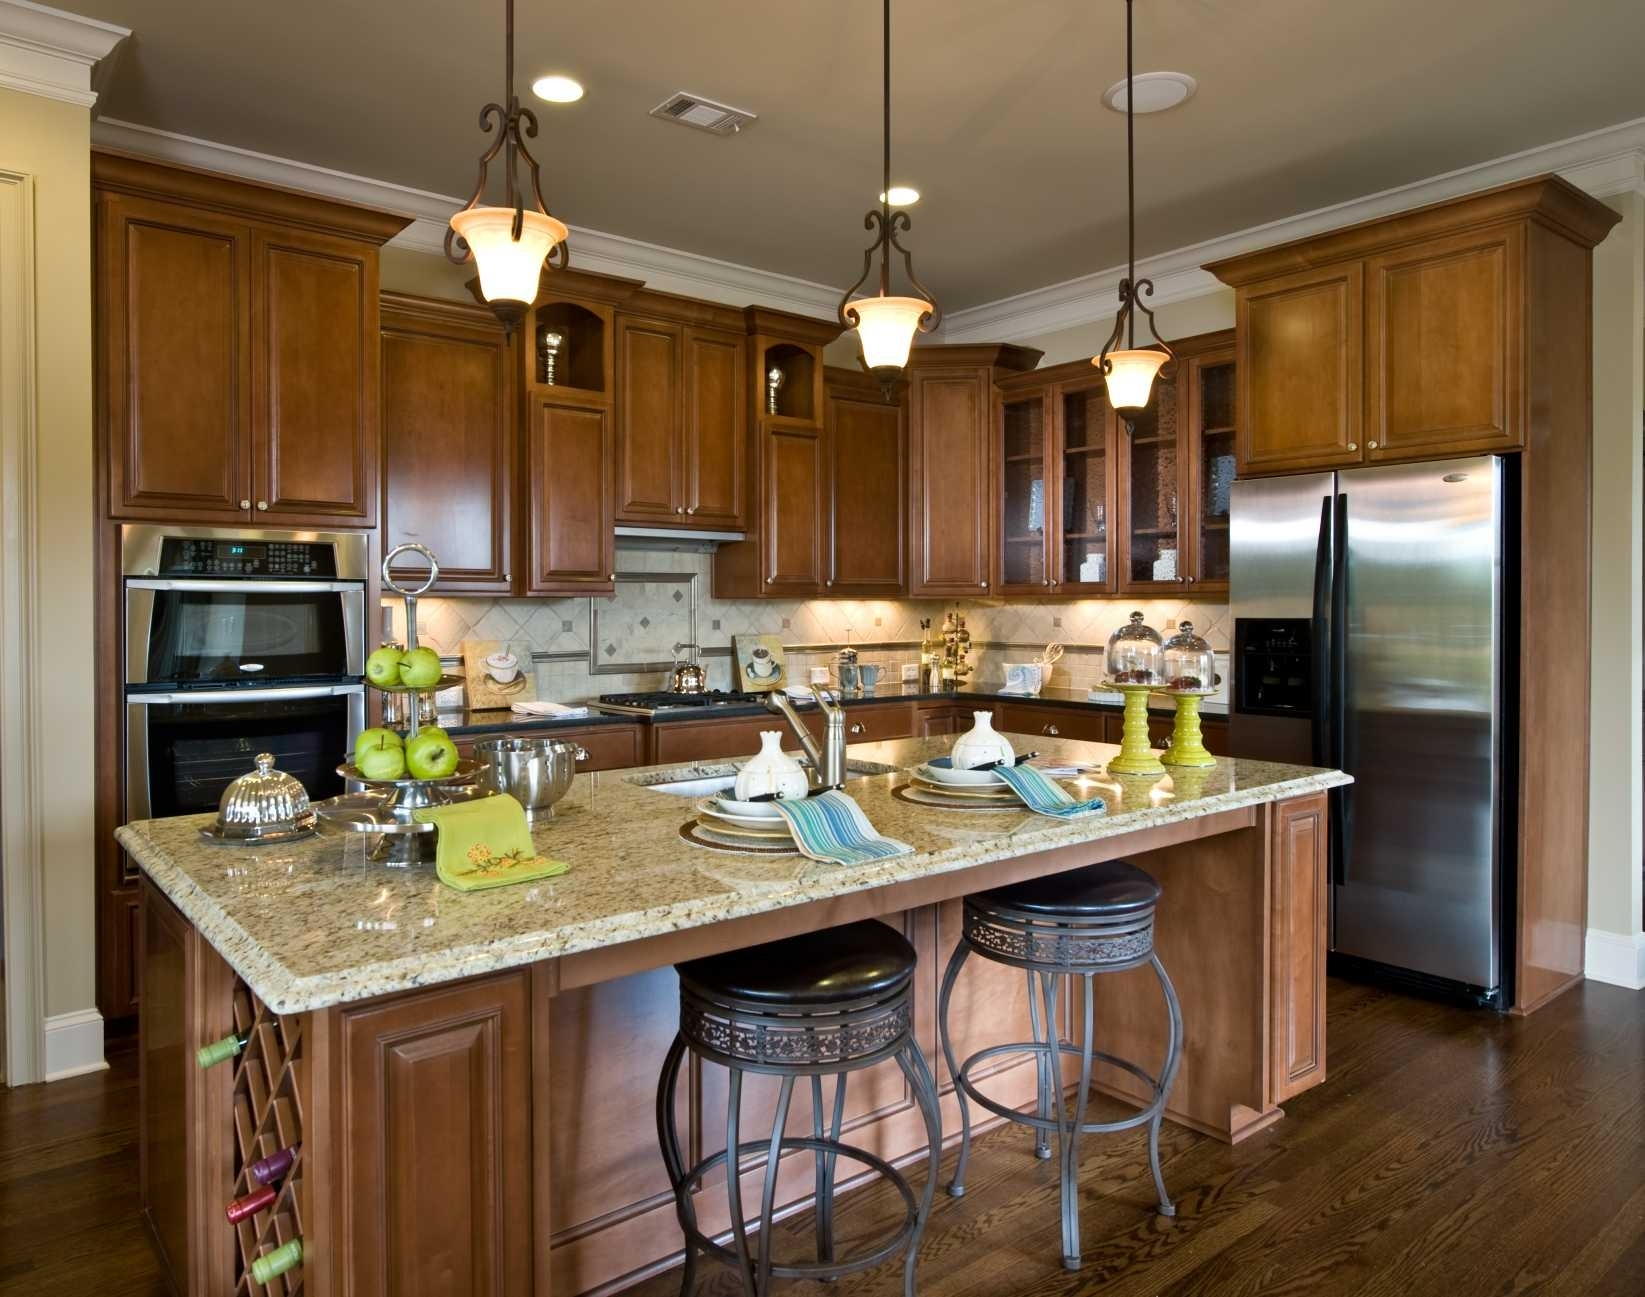 Decorating Small Kitchen Islands